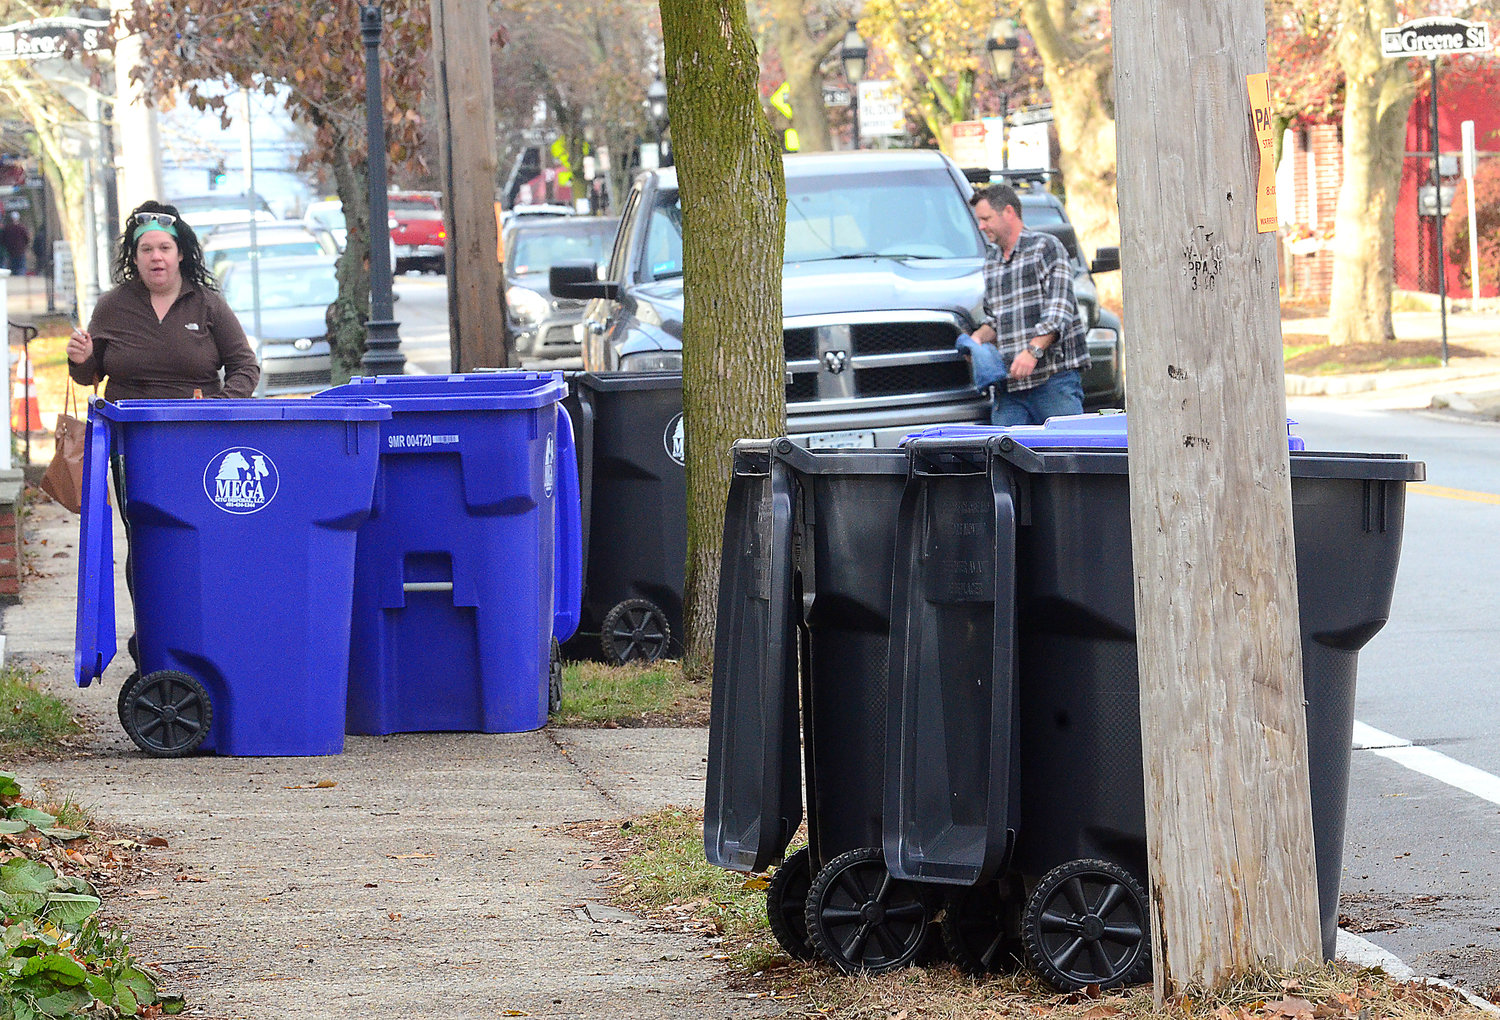 Warrren just launched its new trash and recycling program this week, similar to what Bristol plans for next spring. Pedestrians, bins and cars are shown here on Main Street in downtown Warren. Bristol has decided not to buy these bright blue bins, and it will offer residents smaller version, if they choose.